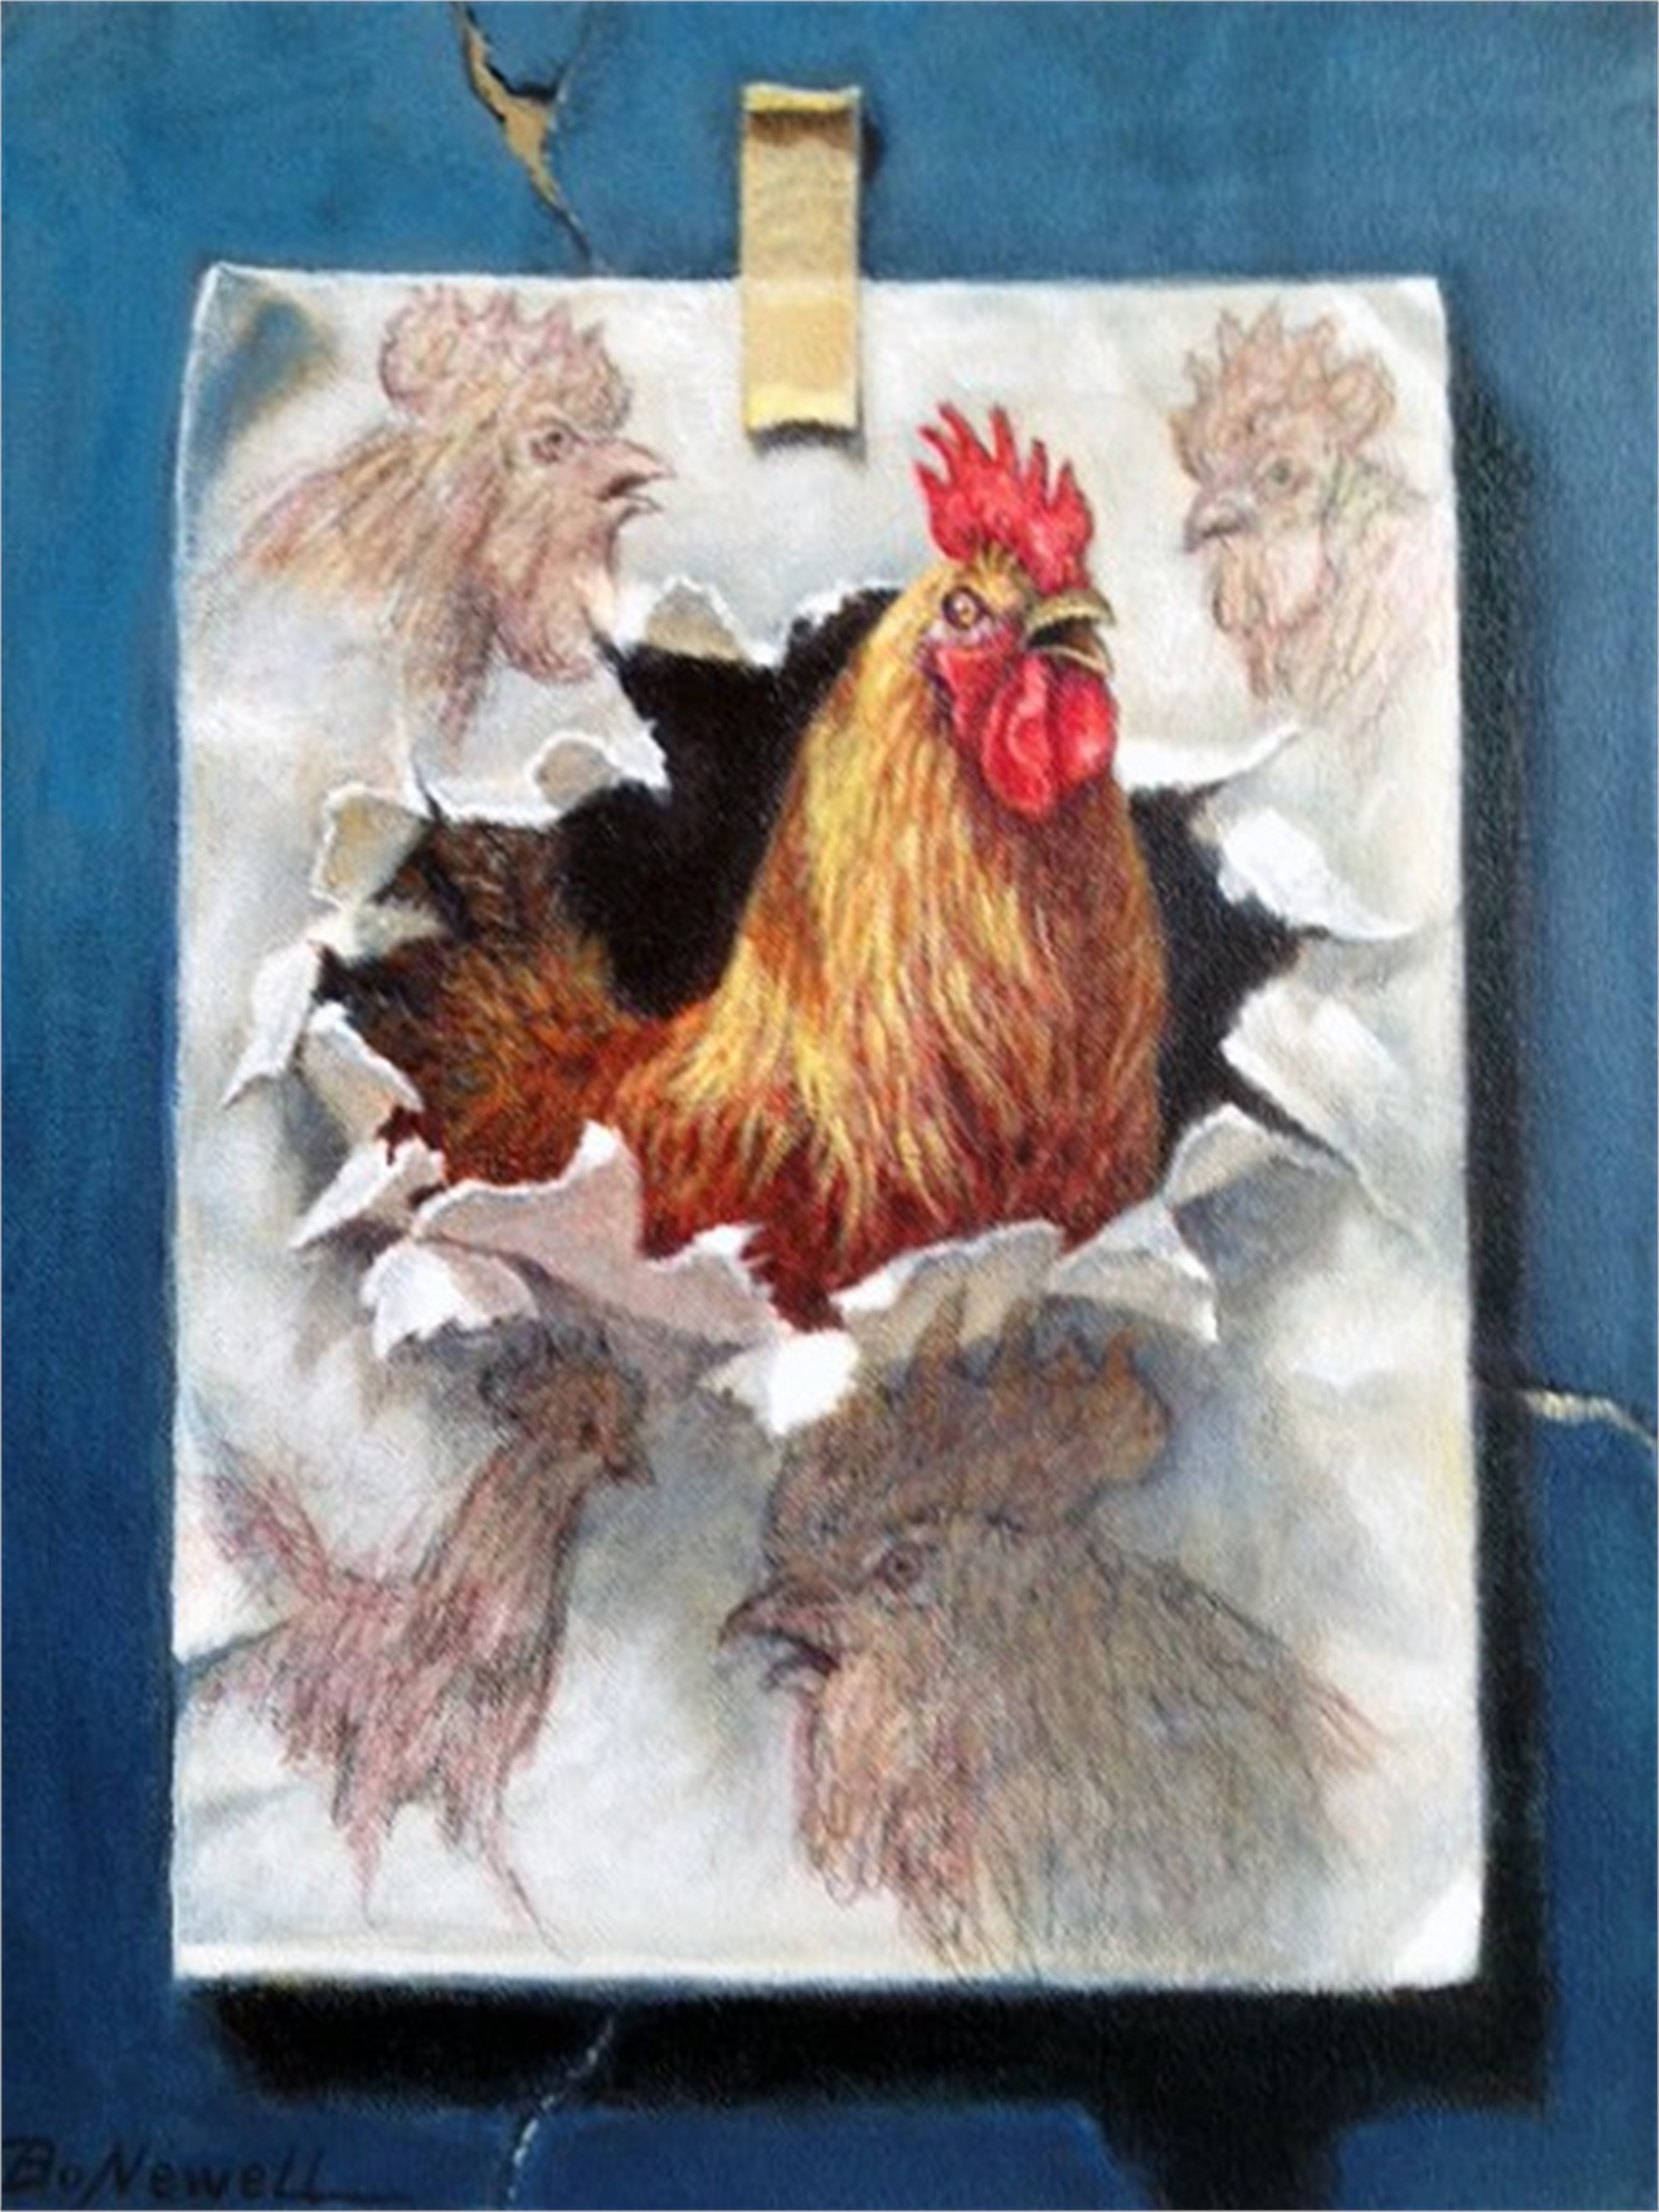 Cock-a-Doodle-Doo, 2015 by Bo Newell